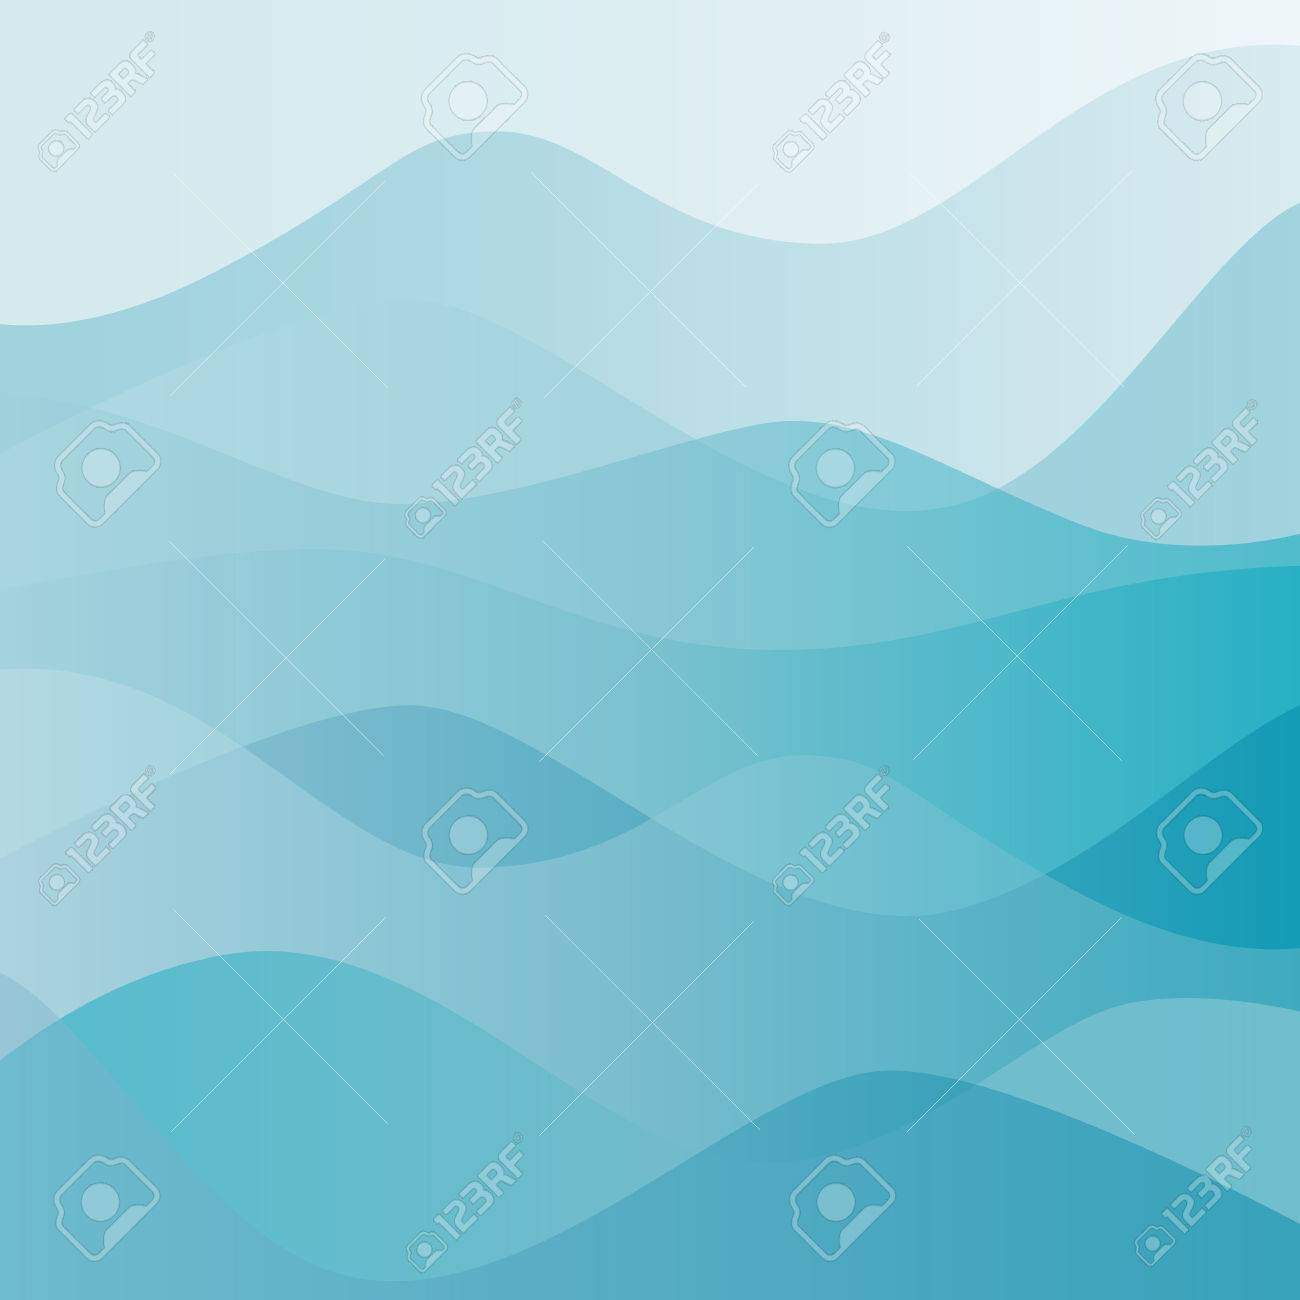 Abstract water nature landscape. Decorative square background. Vector graphic template. - 46085316